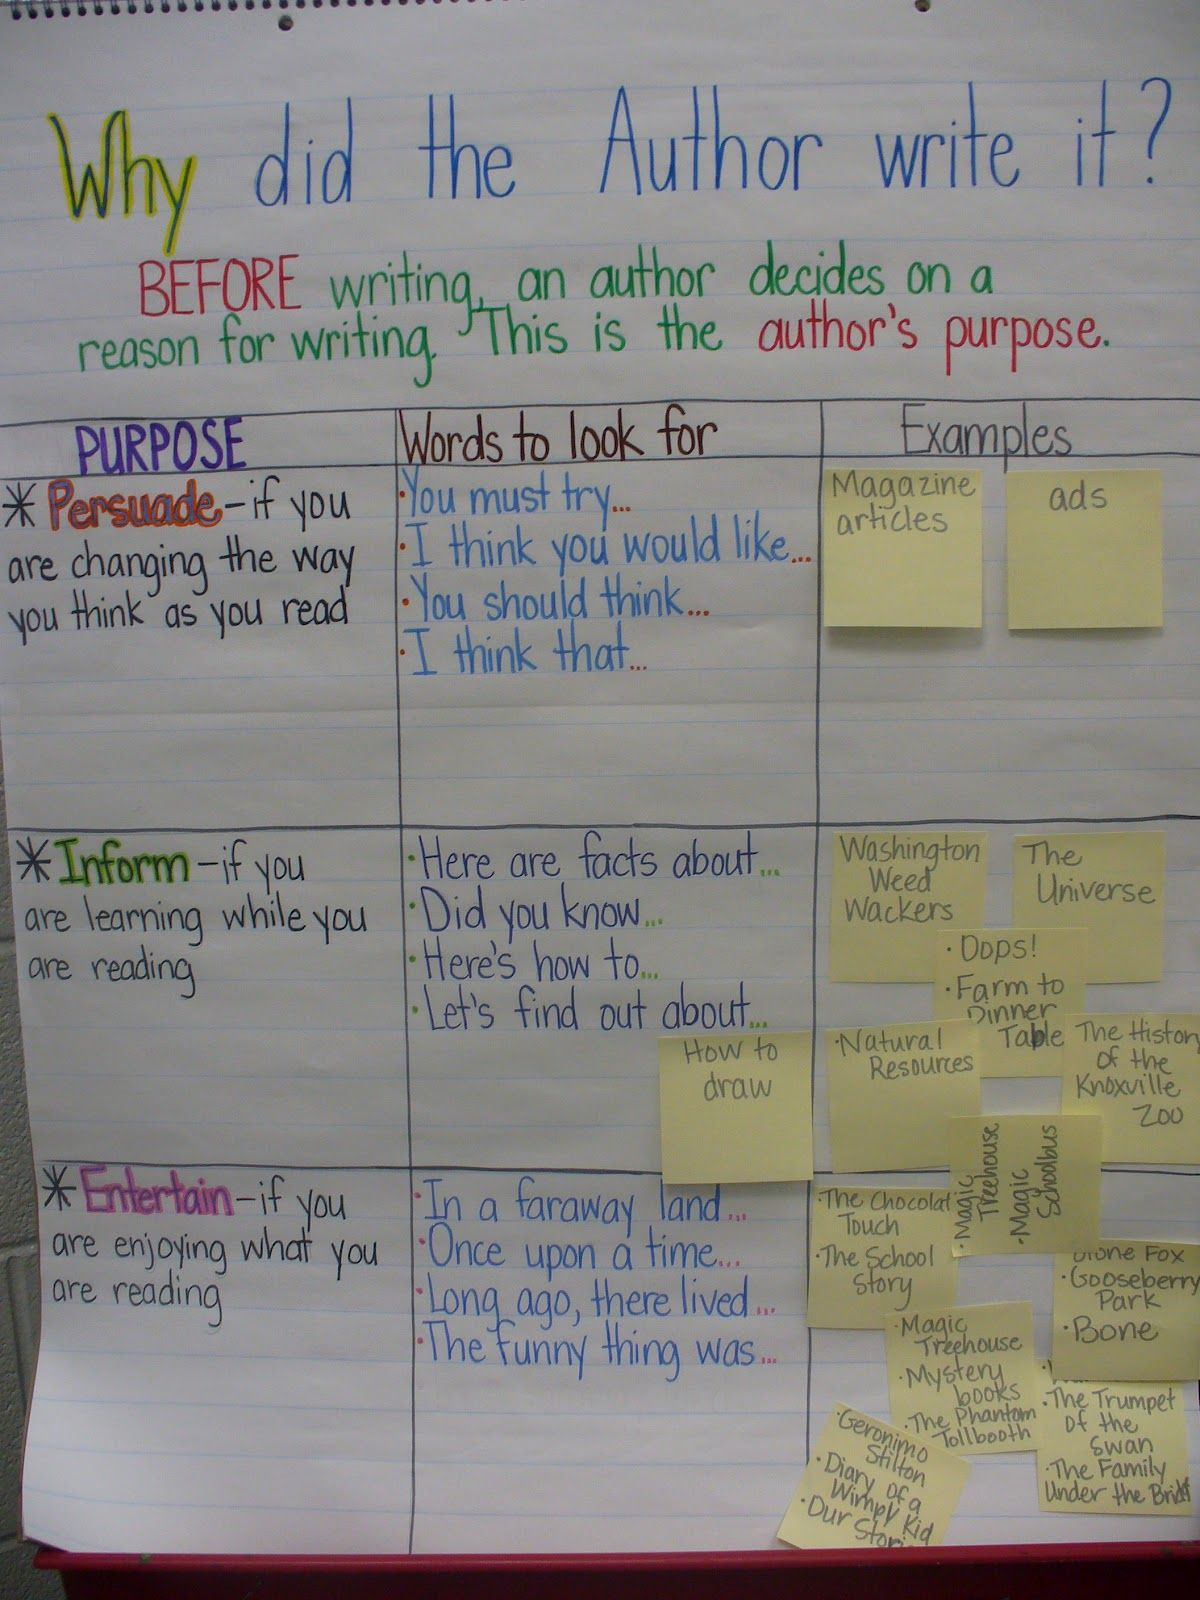 Author's Purpose (for reading and writing)